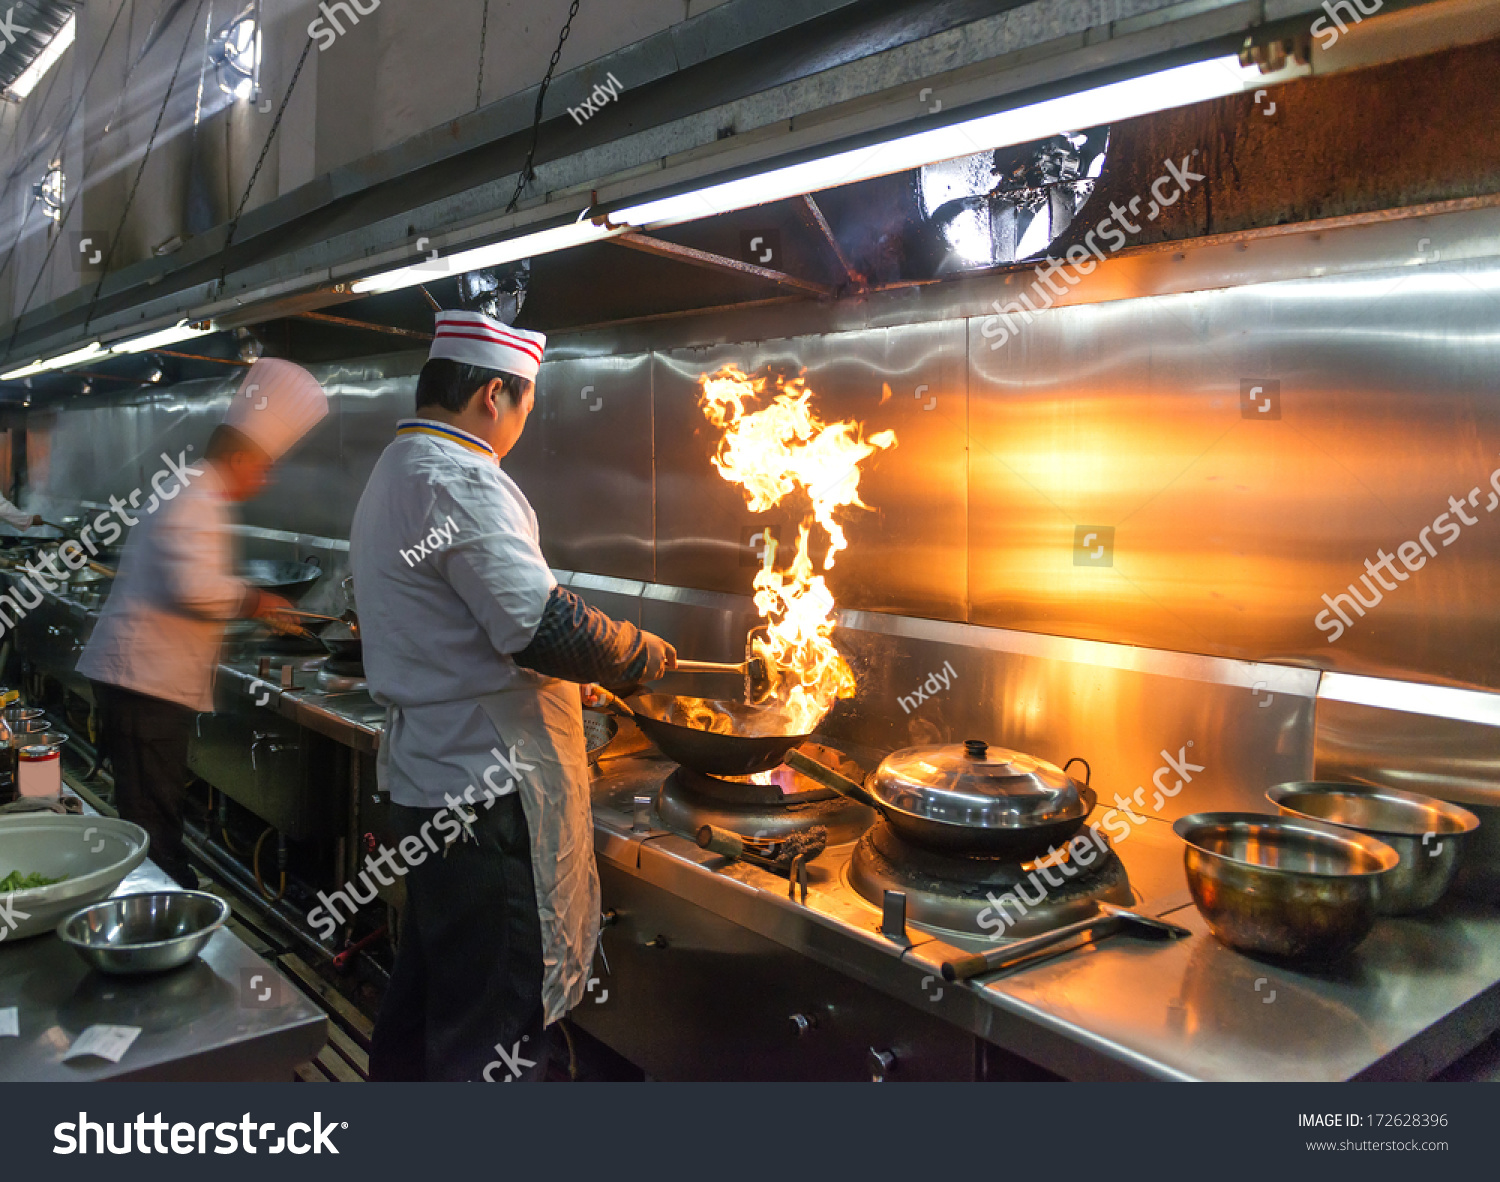 Crowded Kitchen A Narrow Aisle Working Chef Stock Photo